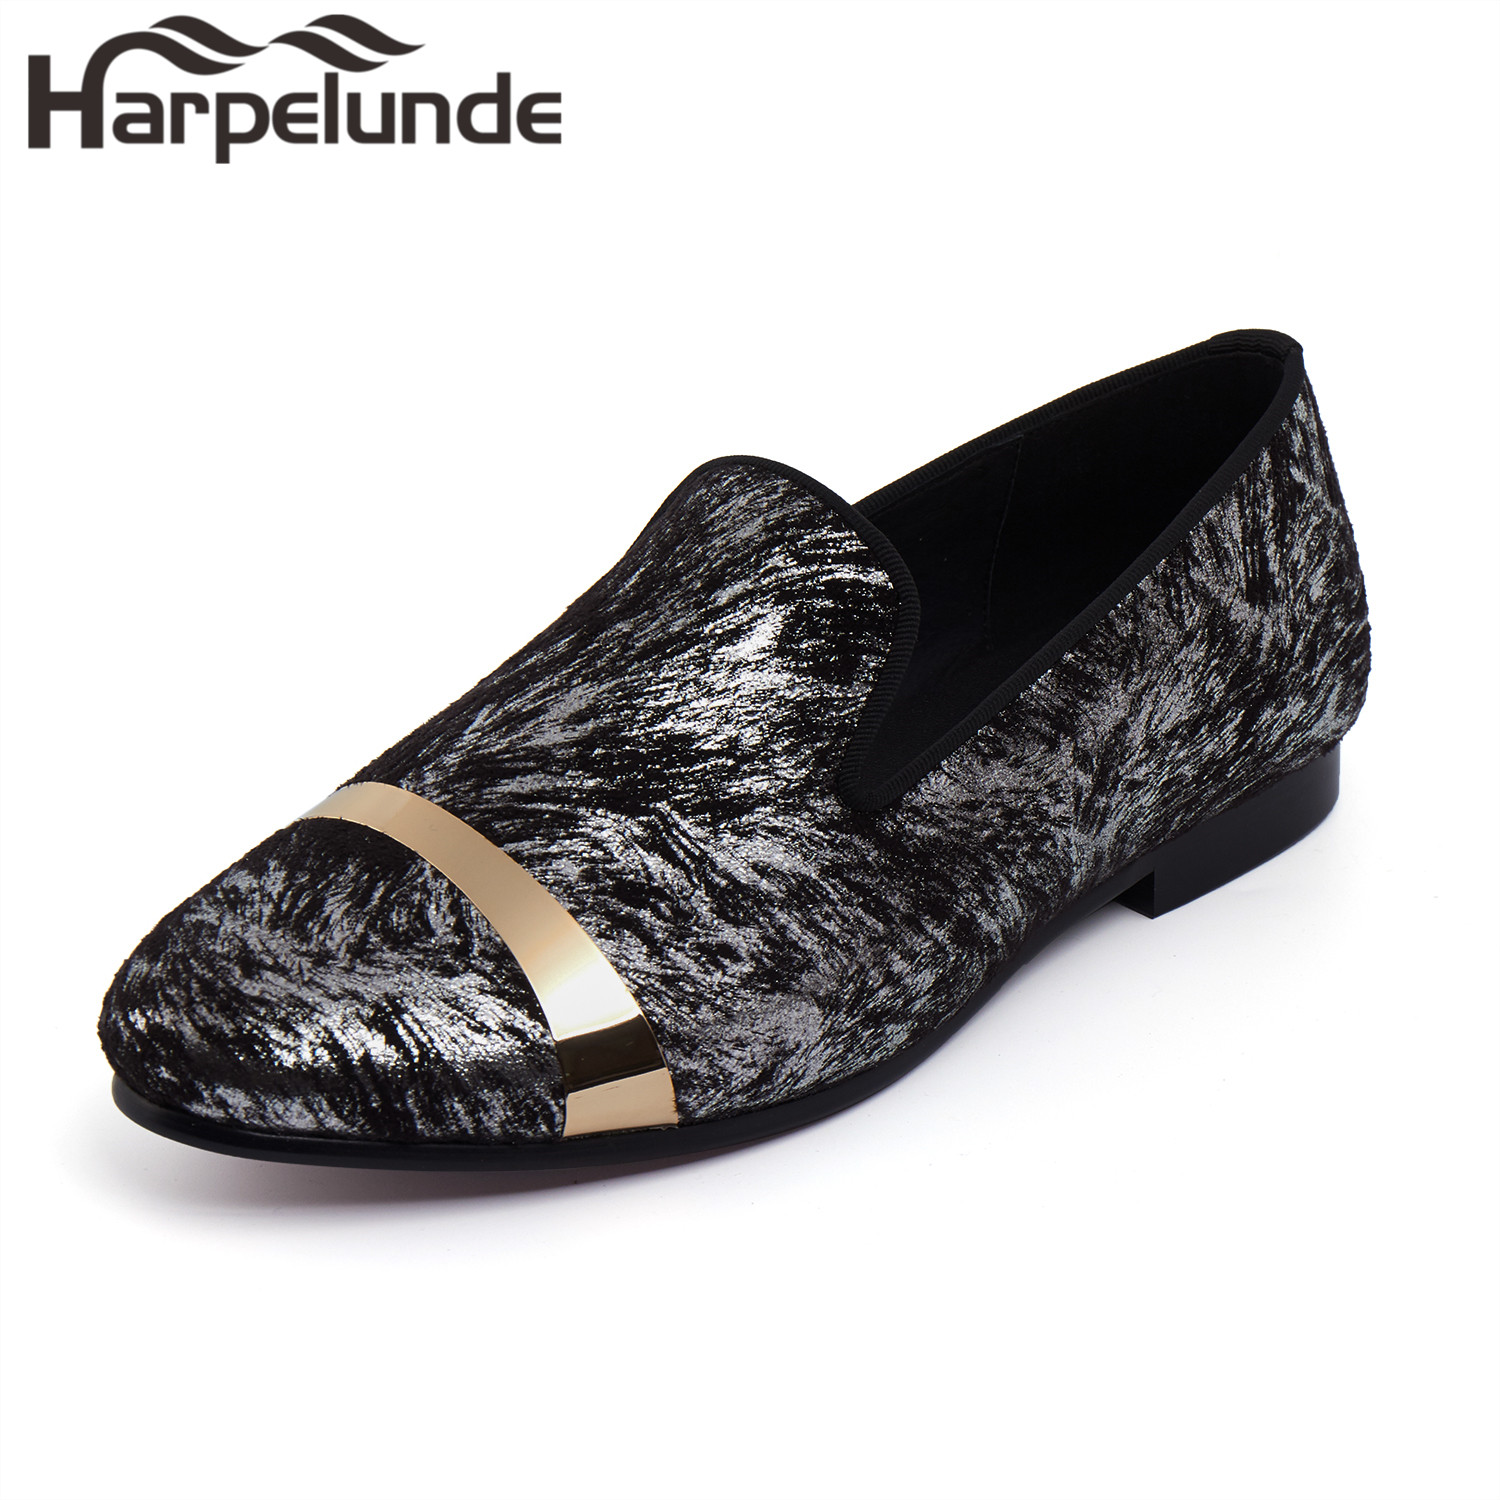 Harpelunde Men Dress Formal Shoes Printed Velvet Loafer With Gold Plate Size 6 To 14